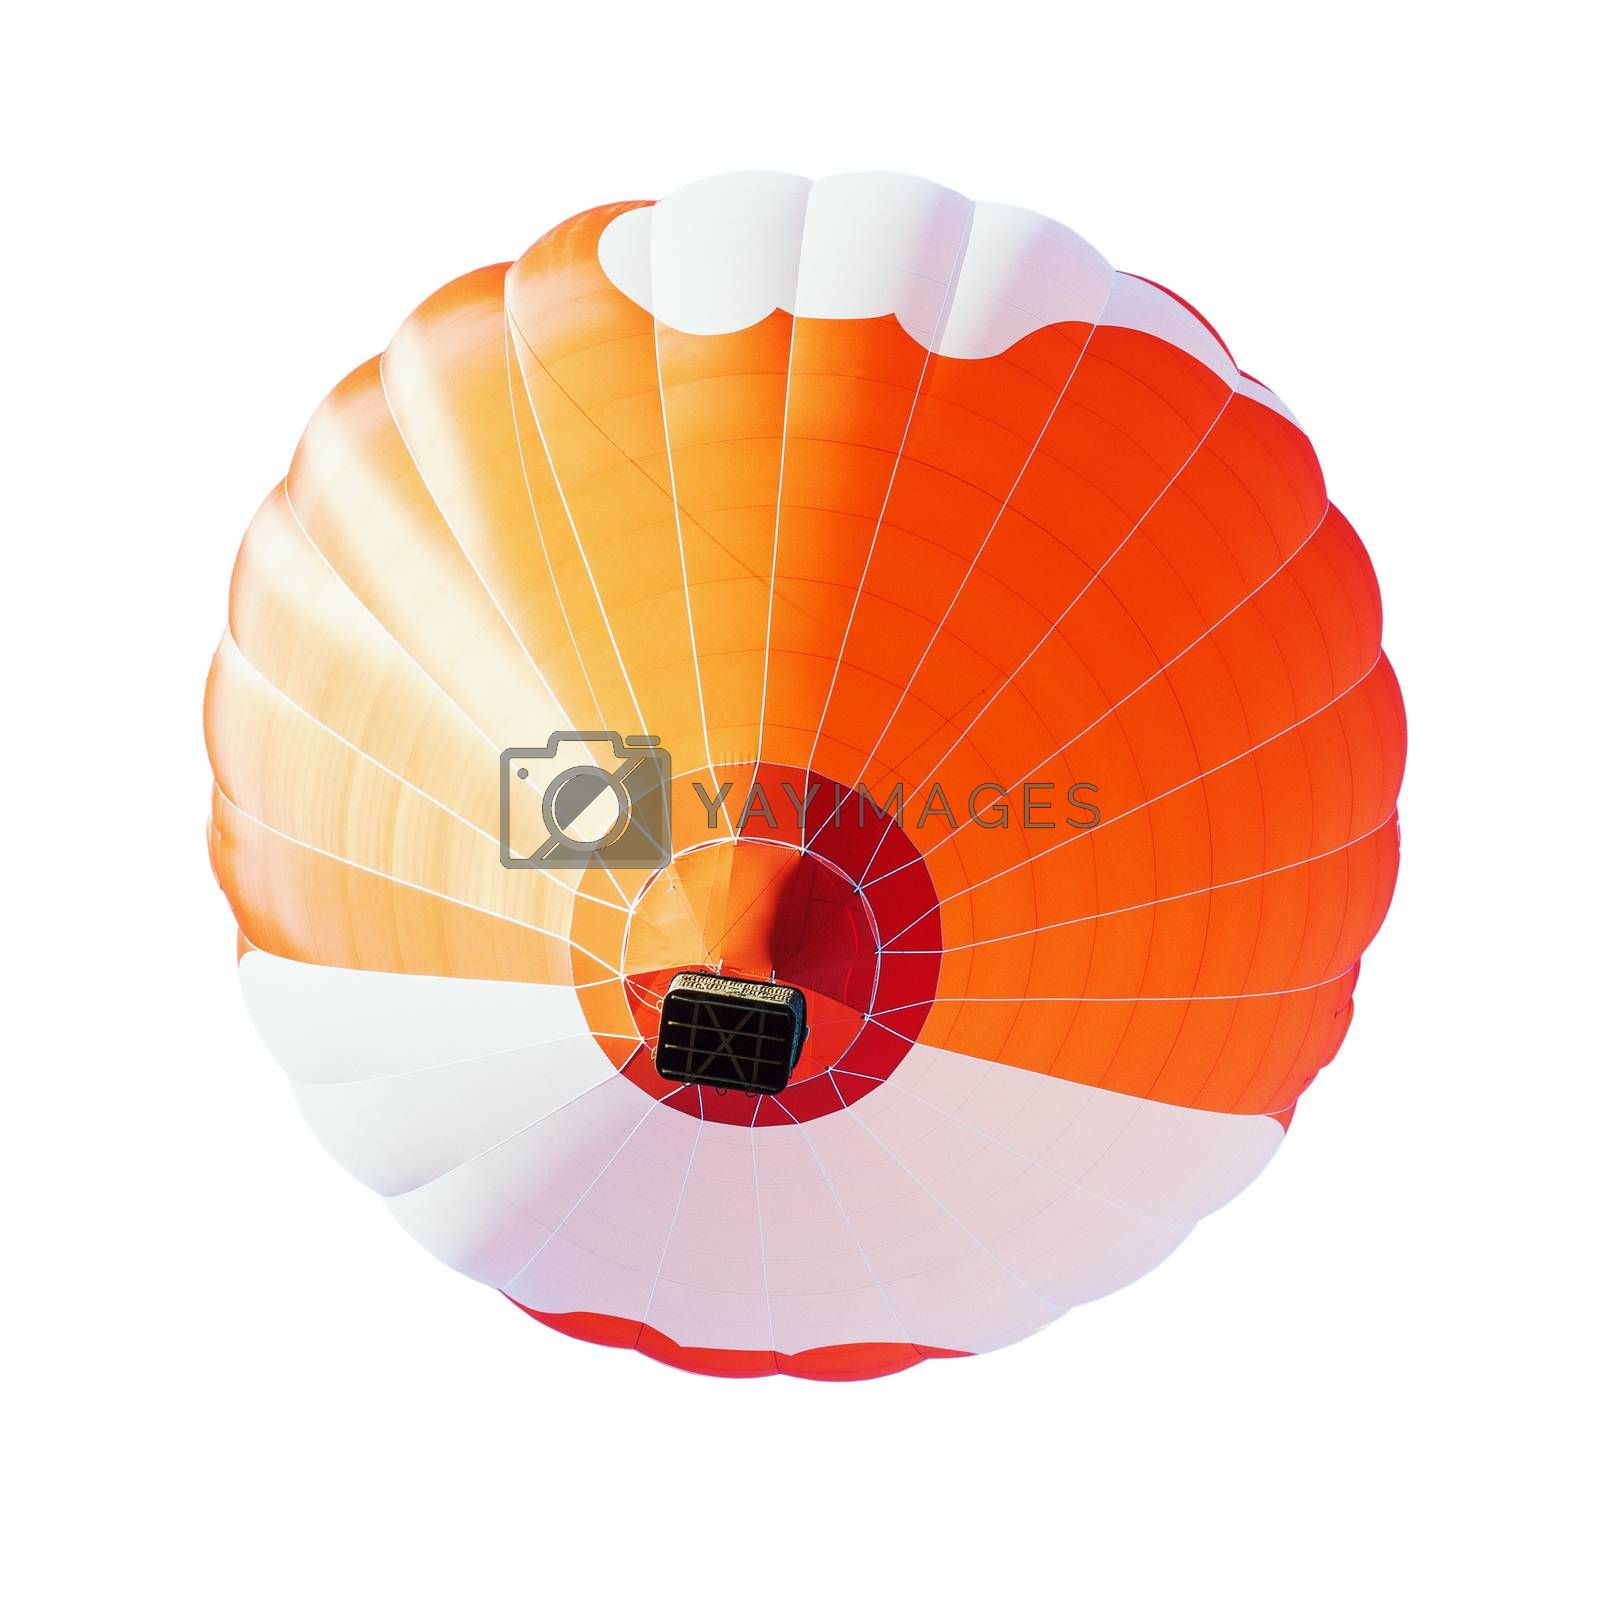 Colorful hot-air balloon isolated on white background by Vaidas Bucys